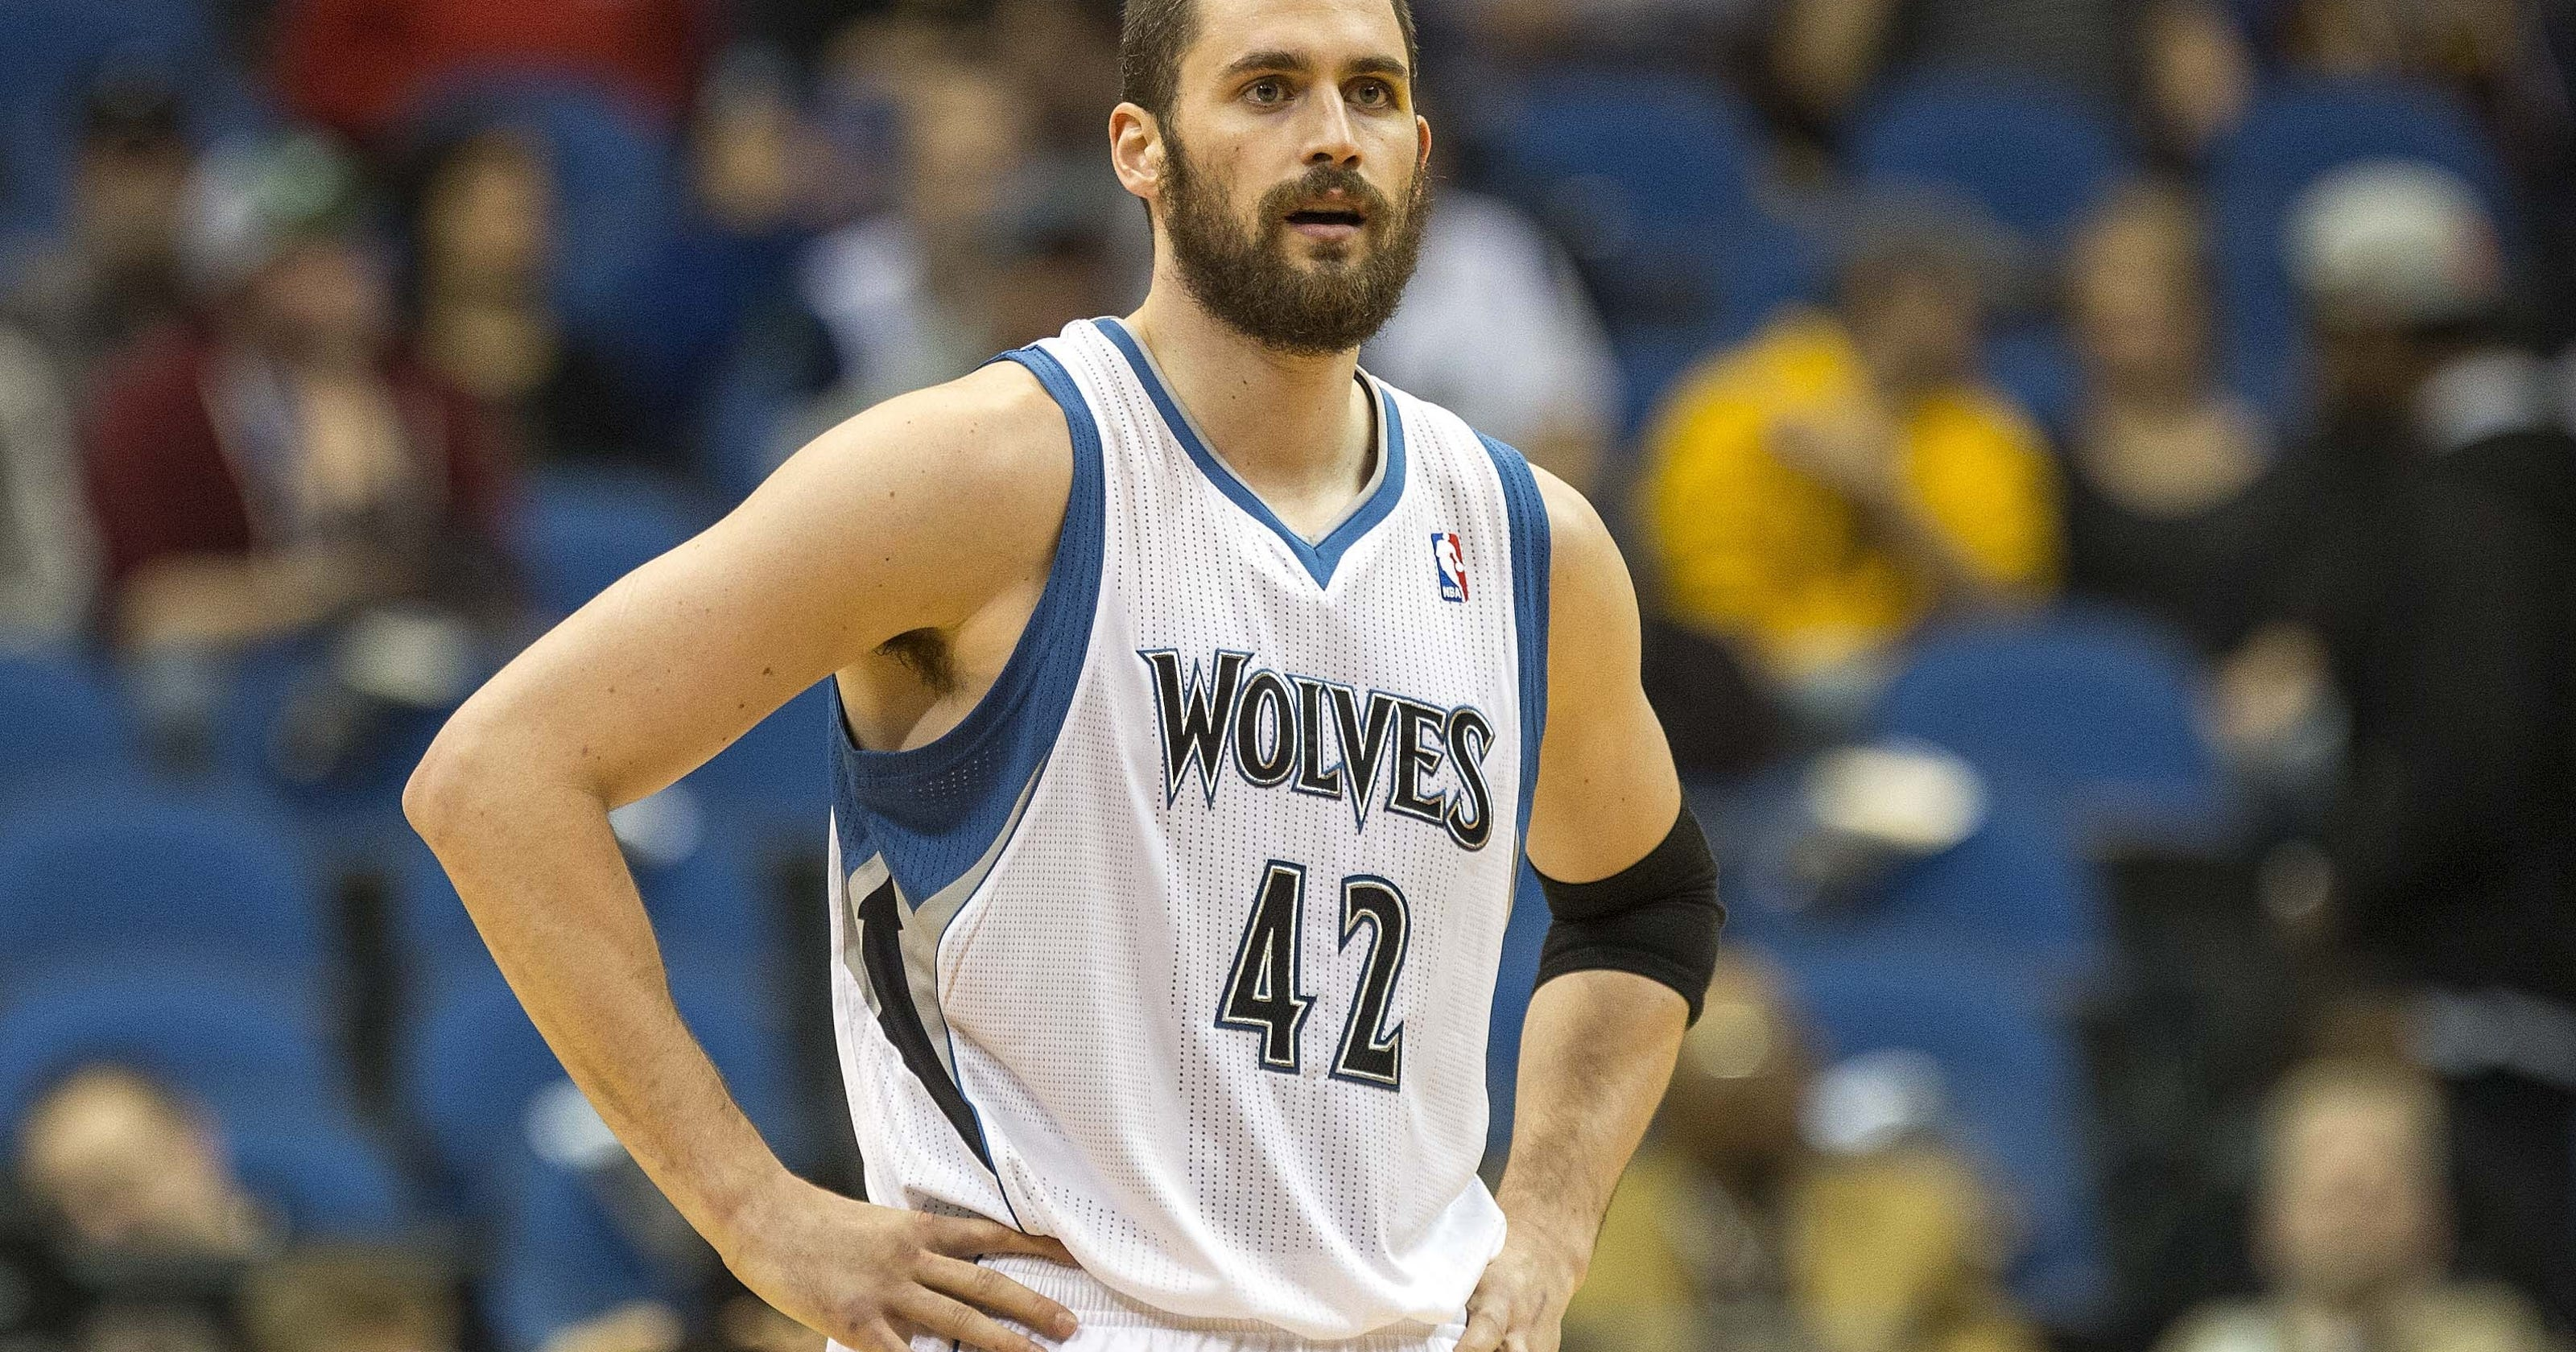 Kevin Love stands by comments but is happy with Timberwolves